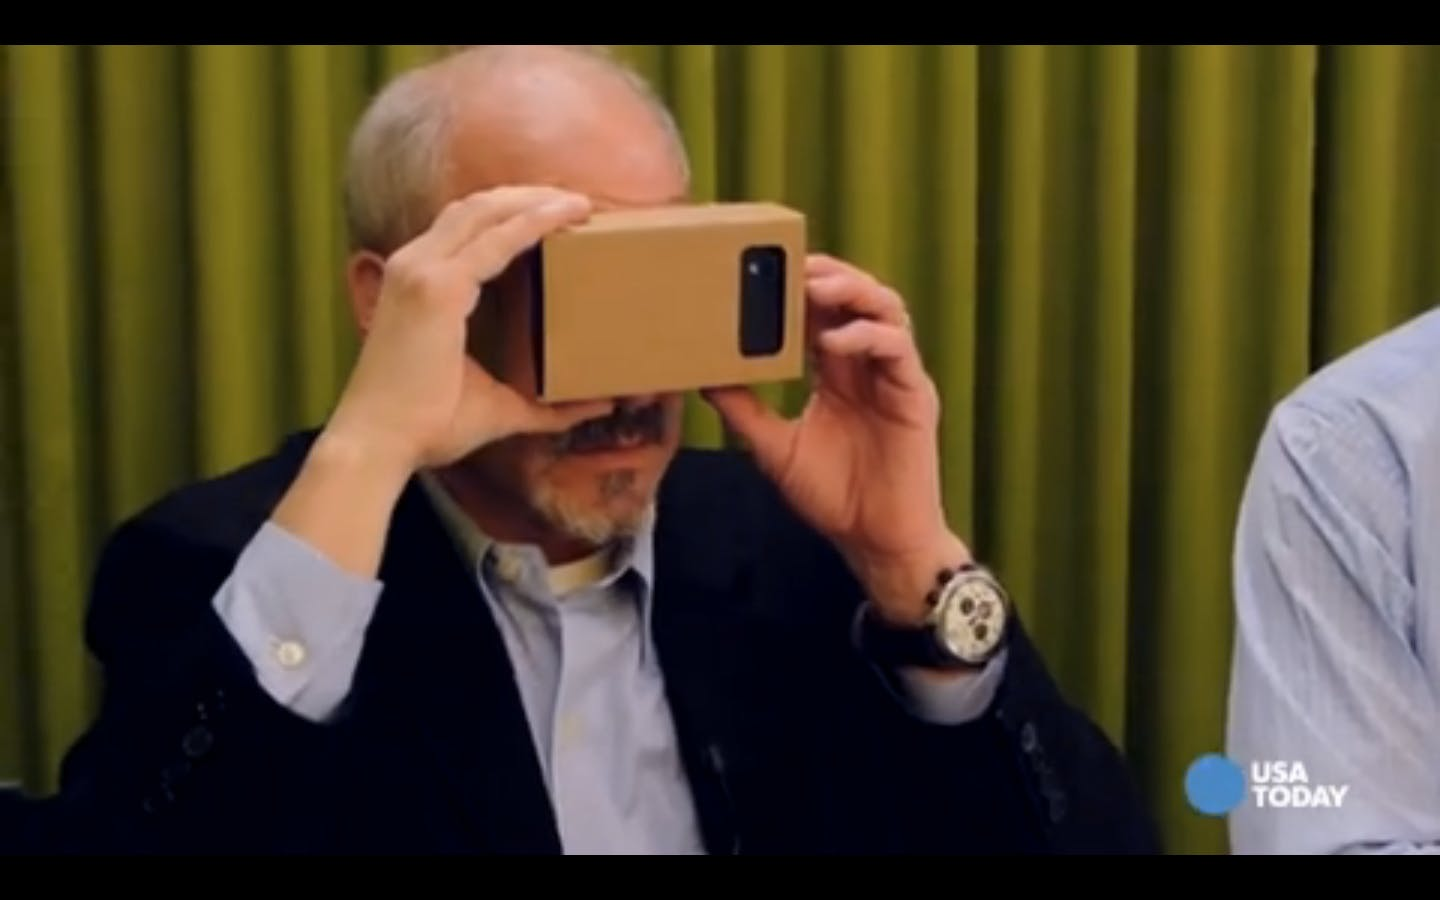 USA Today reporter Edward C. Baig tries to stop the View-Master from sucking out his eyeballs.